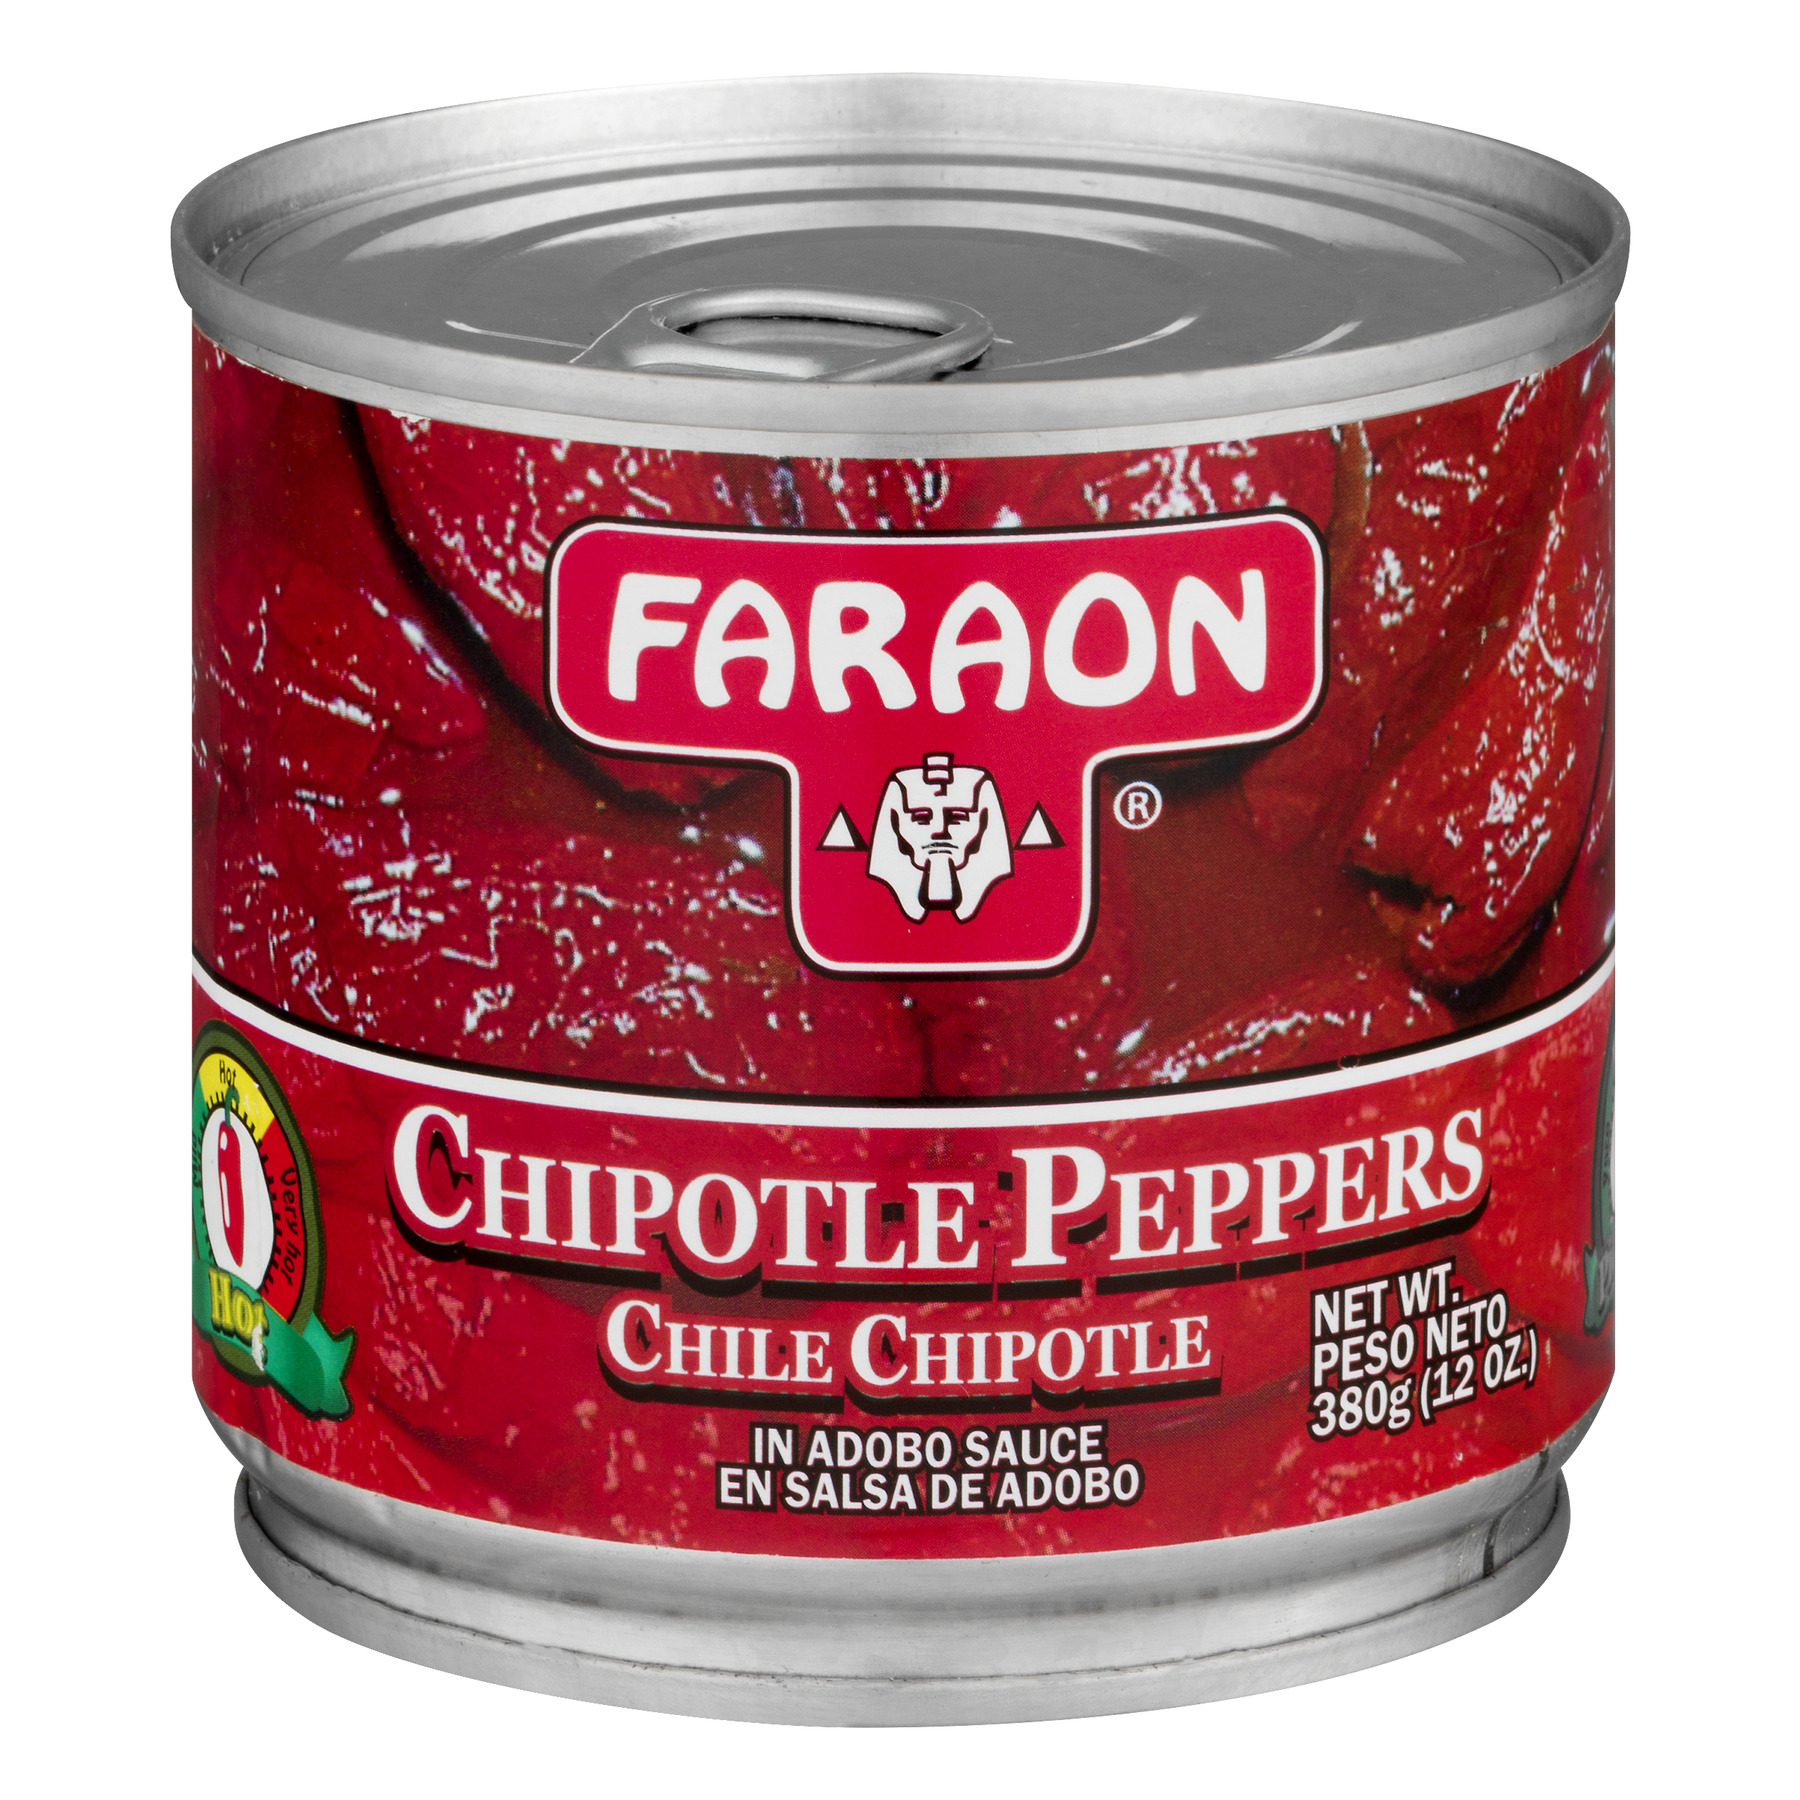 Faraon Chipotle Peppers In Adobo Sauce, 12.0 OZ by Faraon Foods